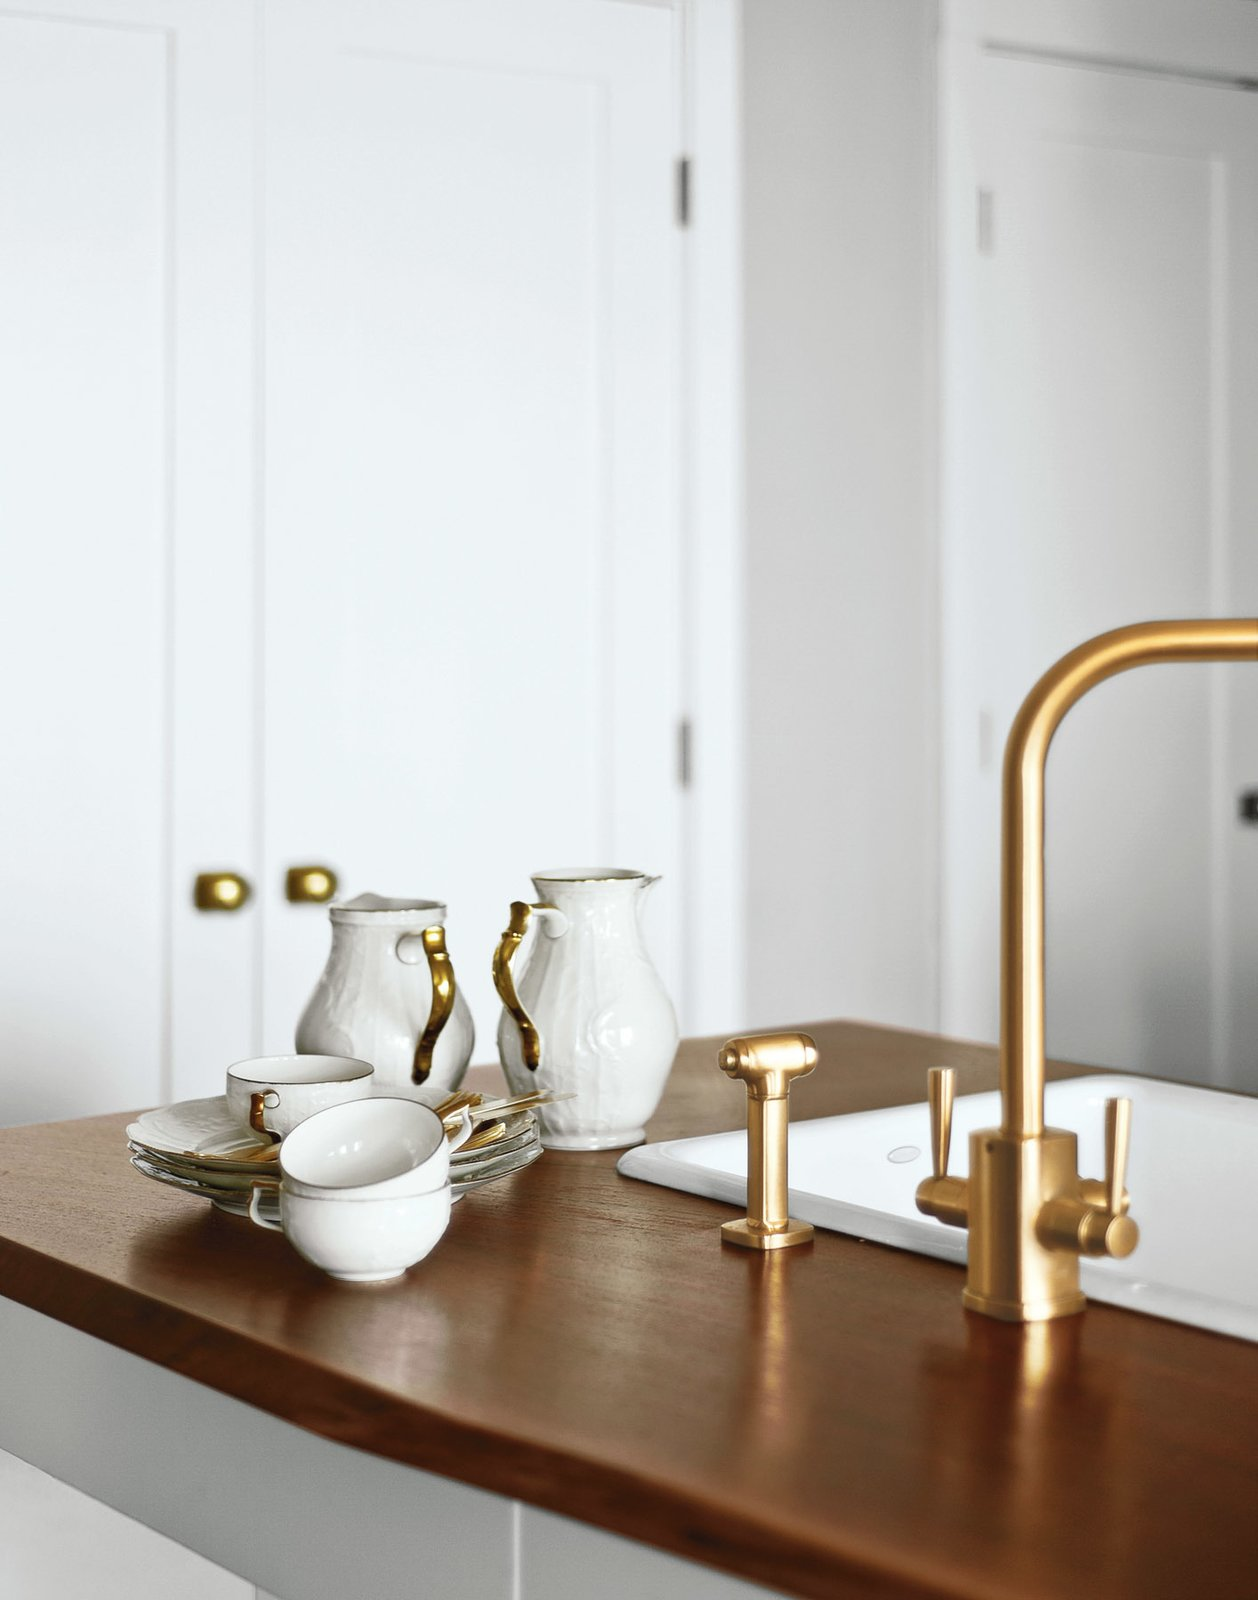 Kitchen, Drop In Sink, and Wood Counter A Rohl faucet was stripped and replated in brushed brass. The modern fixtures prove a lovely contrast to the American walnut countertops and original Rosenthal dishware.  Photo 10 of 12 in A Minimal Yet Mighty Brooklyn Apartment